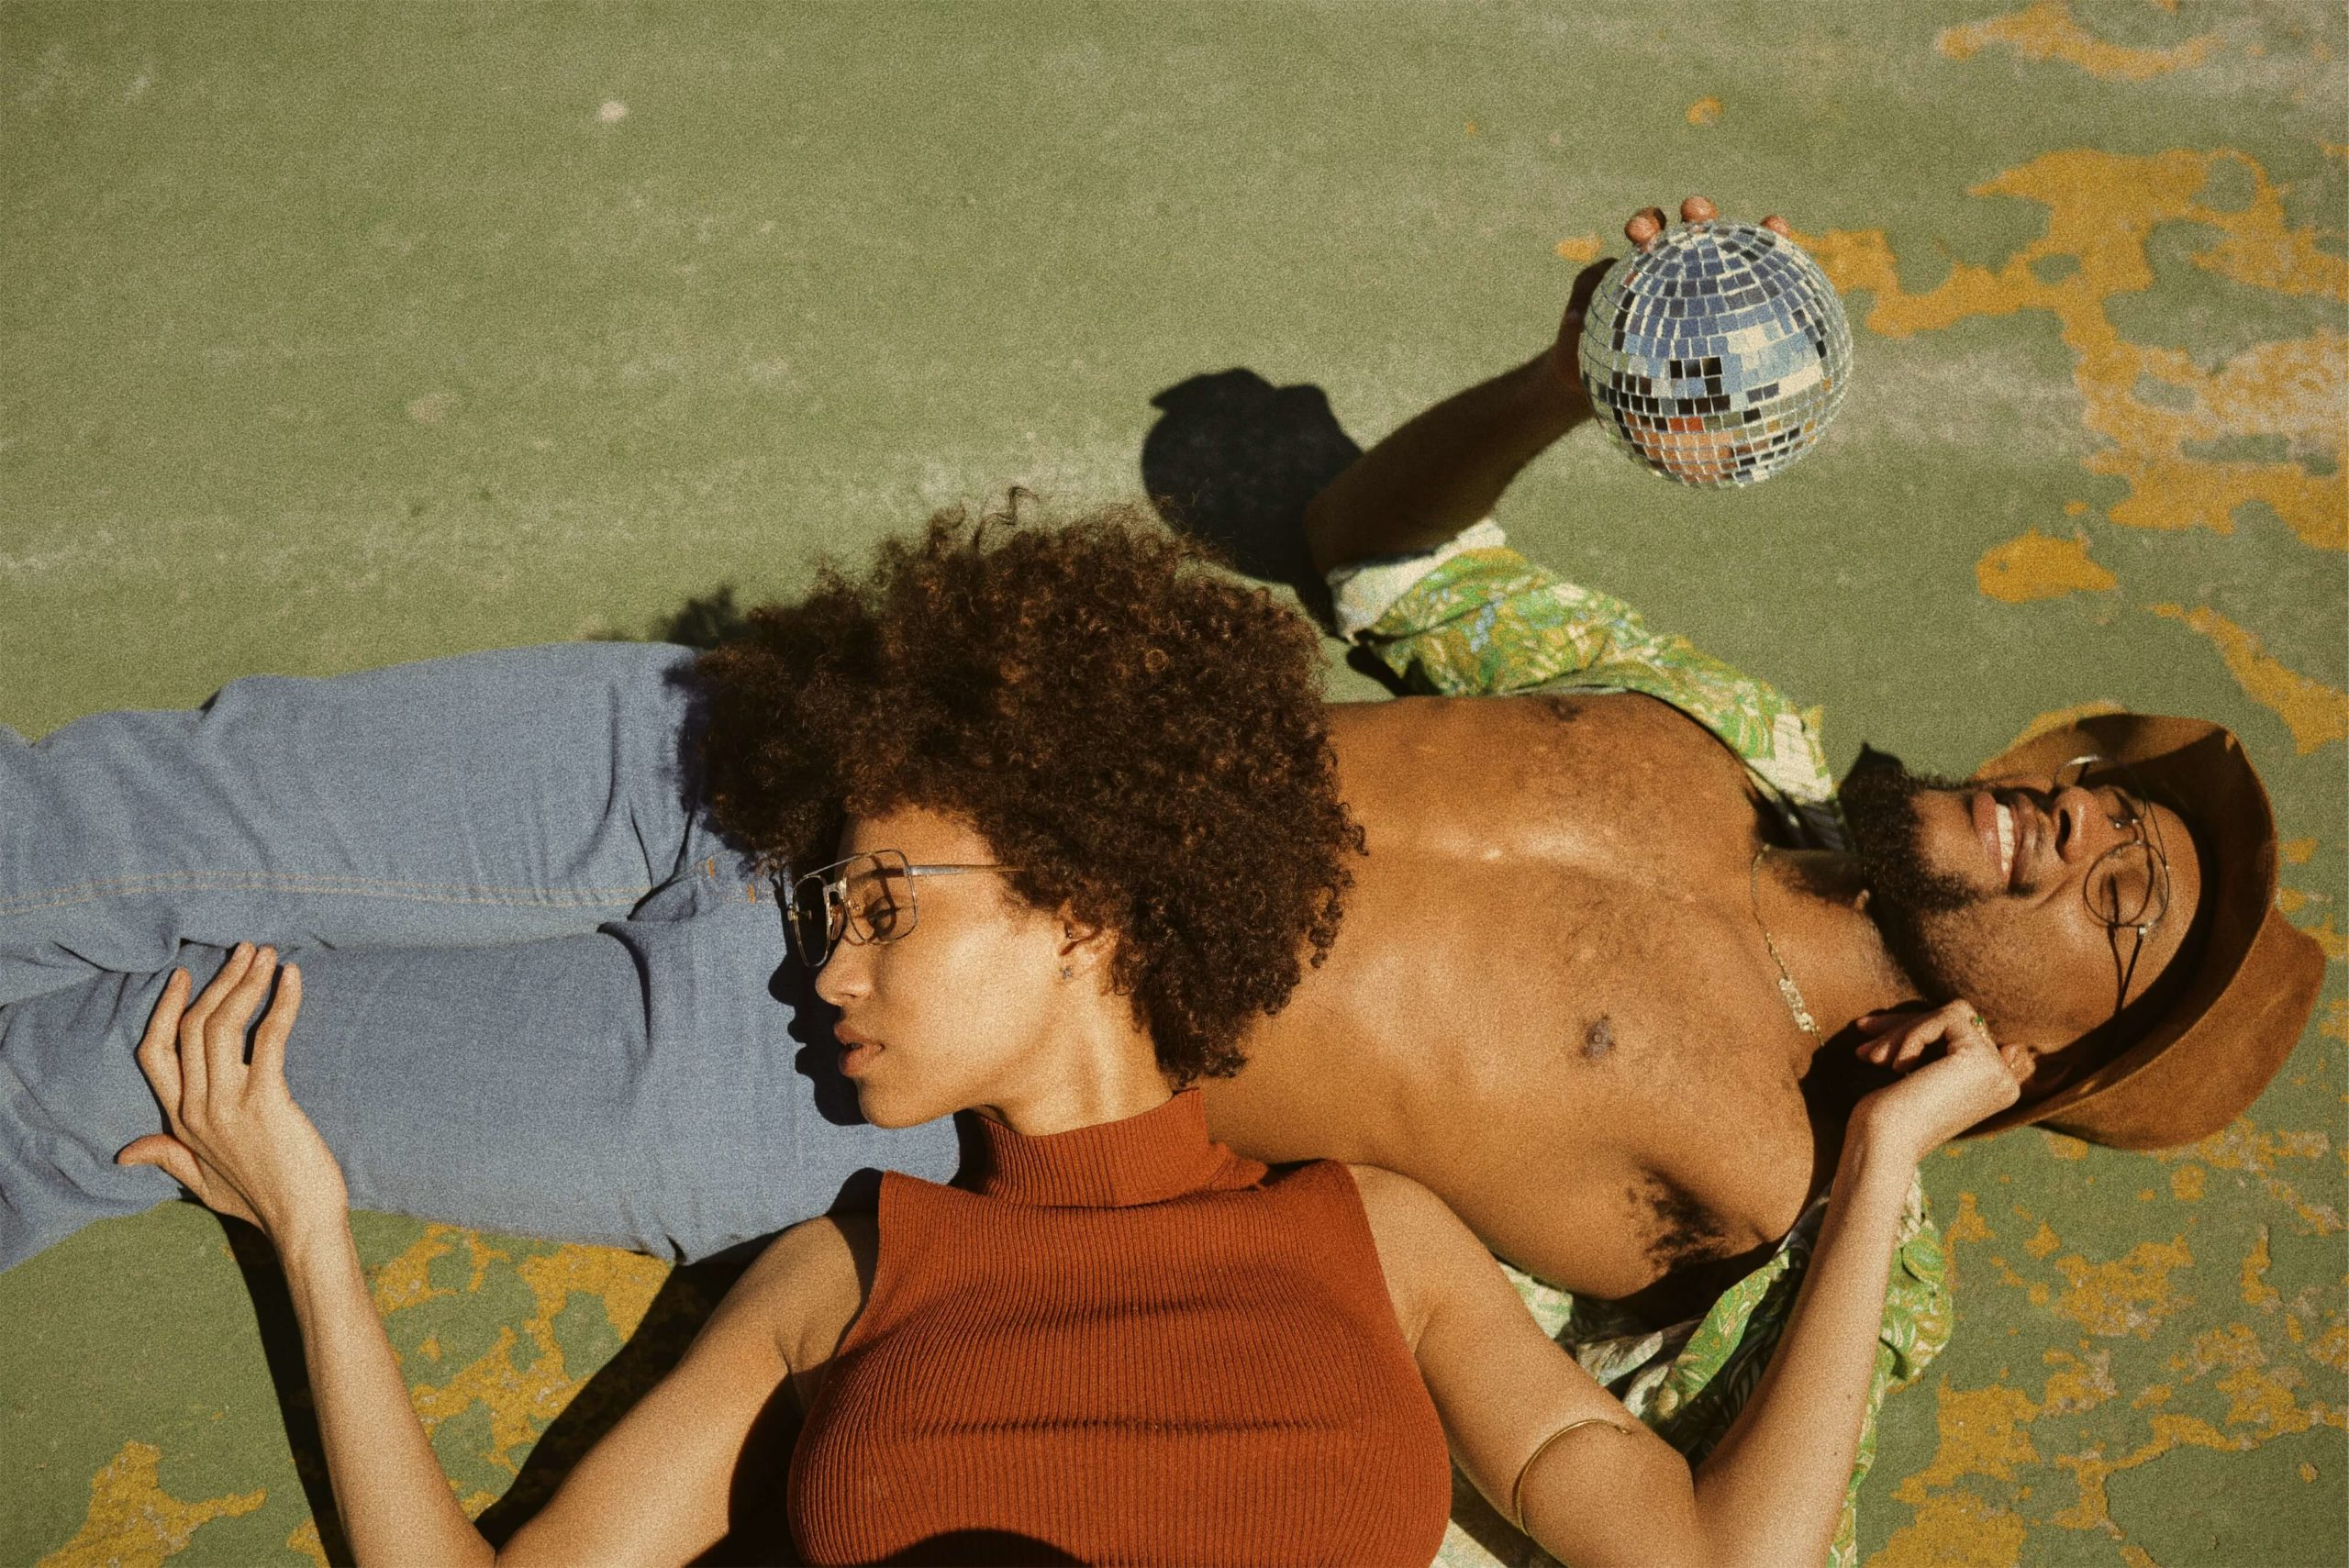 A couple is Striking a Perfect Balance between Intimacy and Space in a Relationship